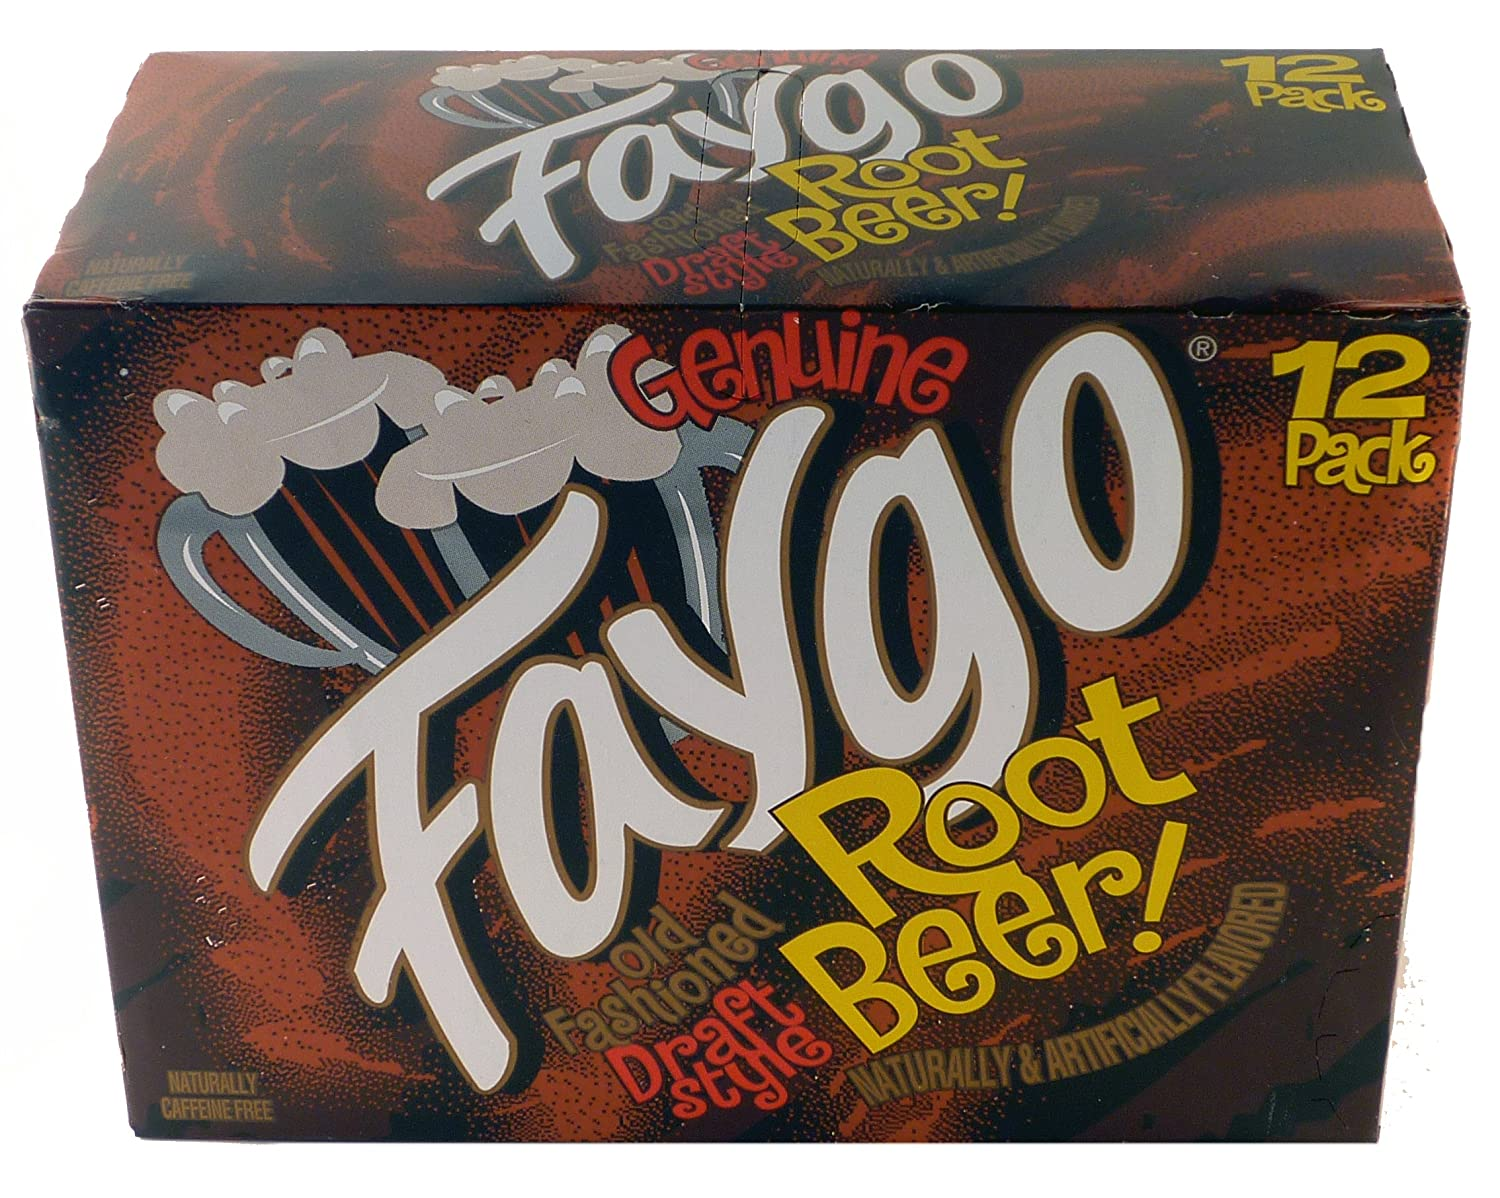 Faygo Old Fashioned Draft Style Root Beer - 12 Pack of 12-oz. Cans